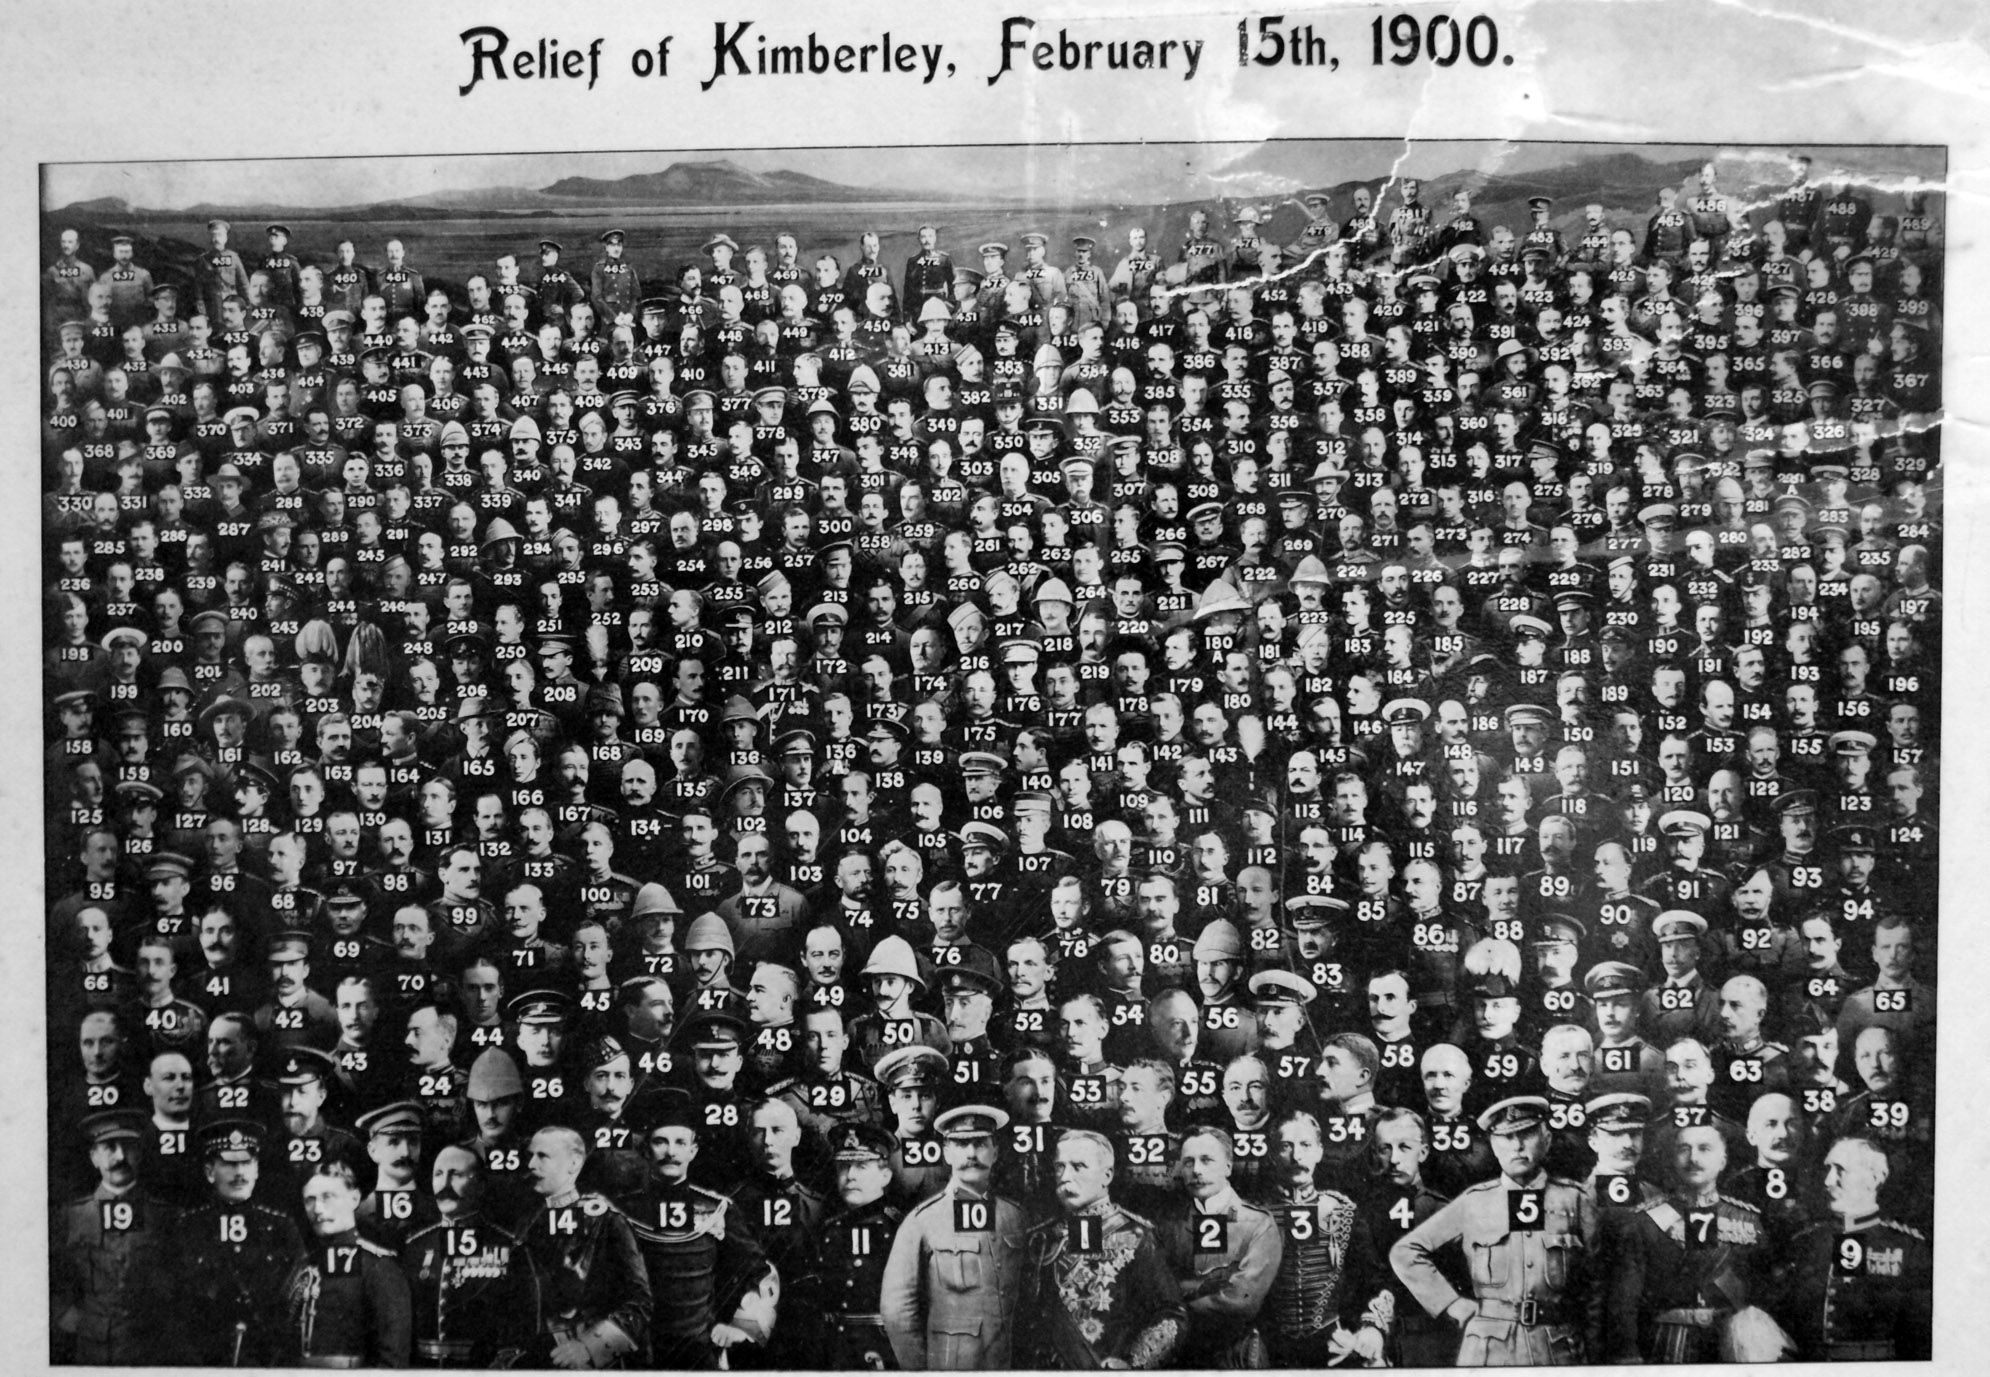 This image and the close-up below shows almost 500 officers present at the Relief of Kimberley. Captain E.R. Gordon is identified in the caption as No 167. Several copies of this photomontage are known to exist (family collection).